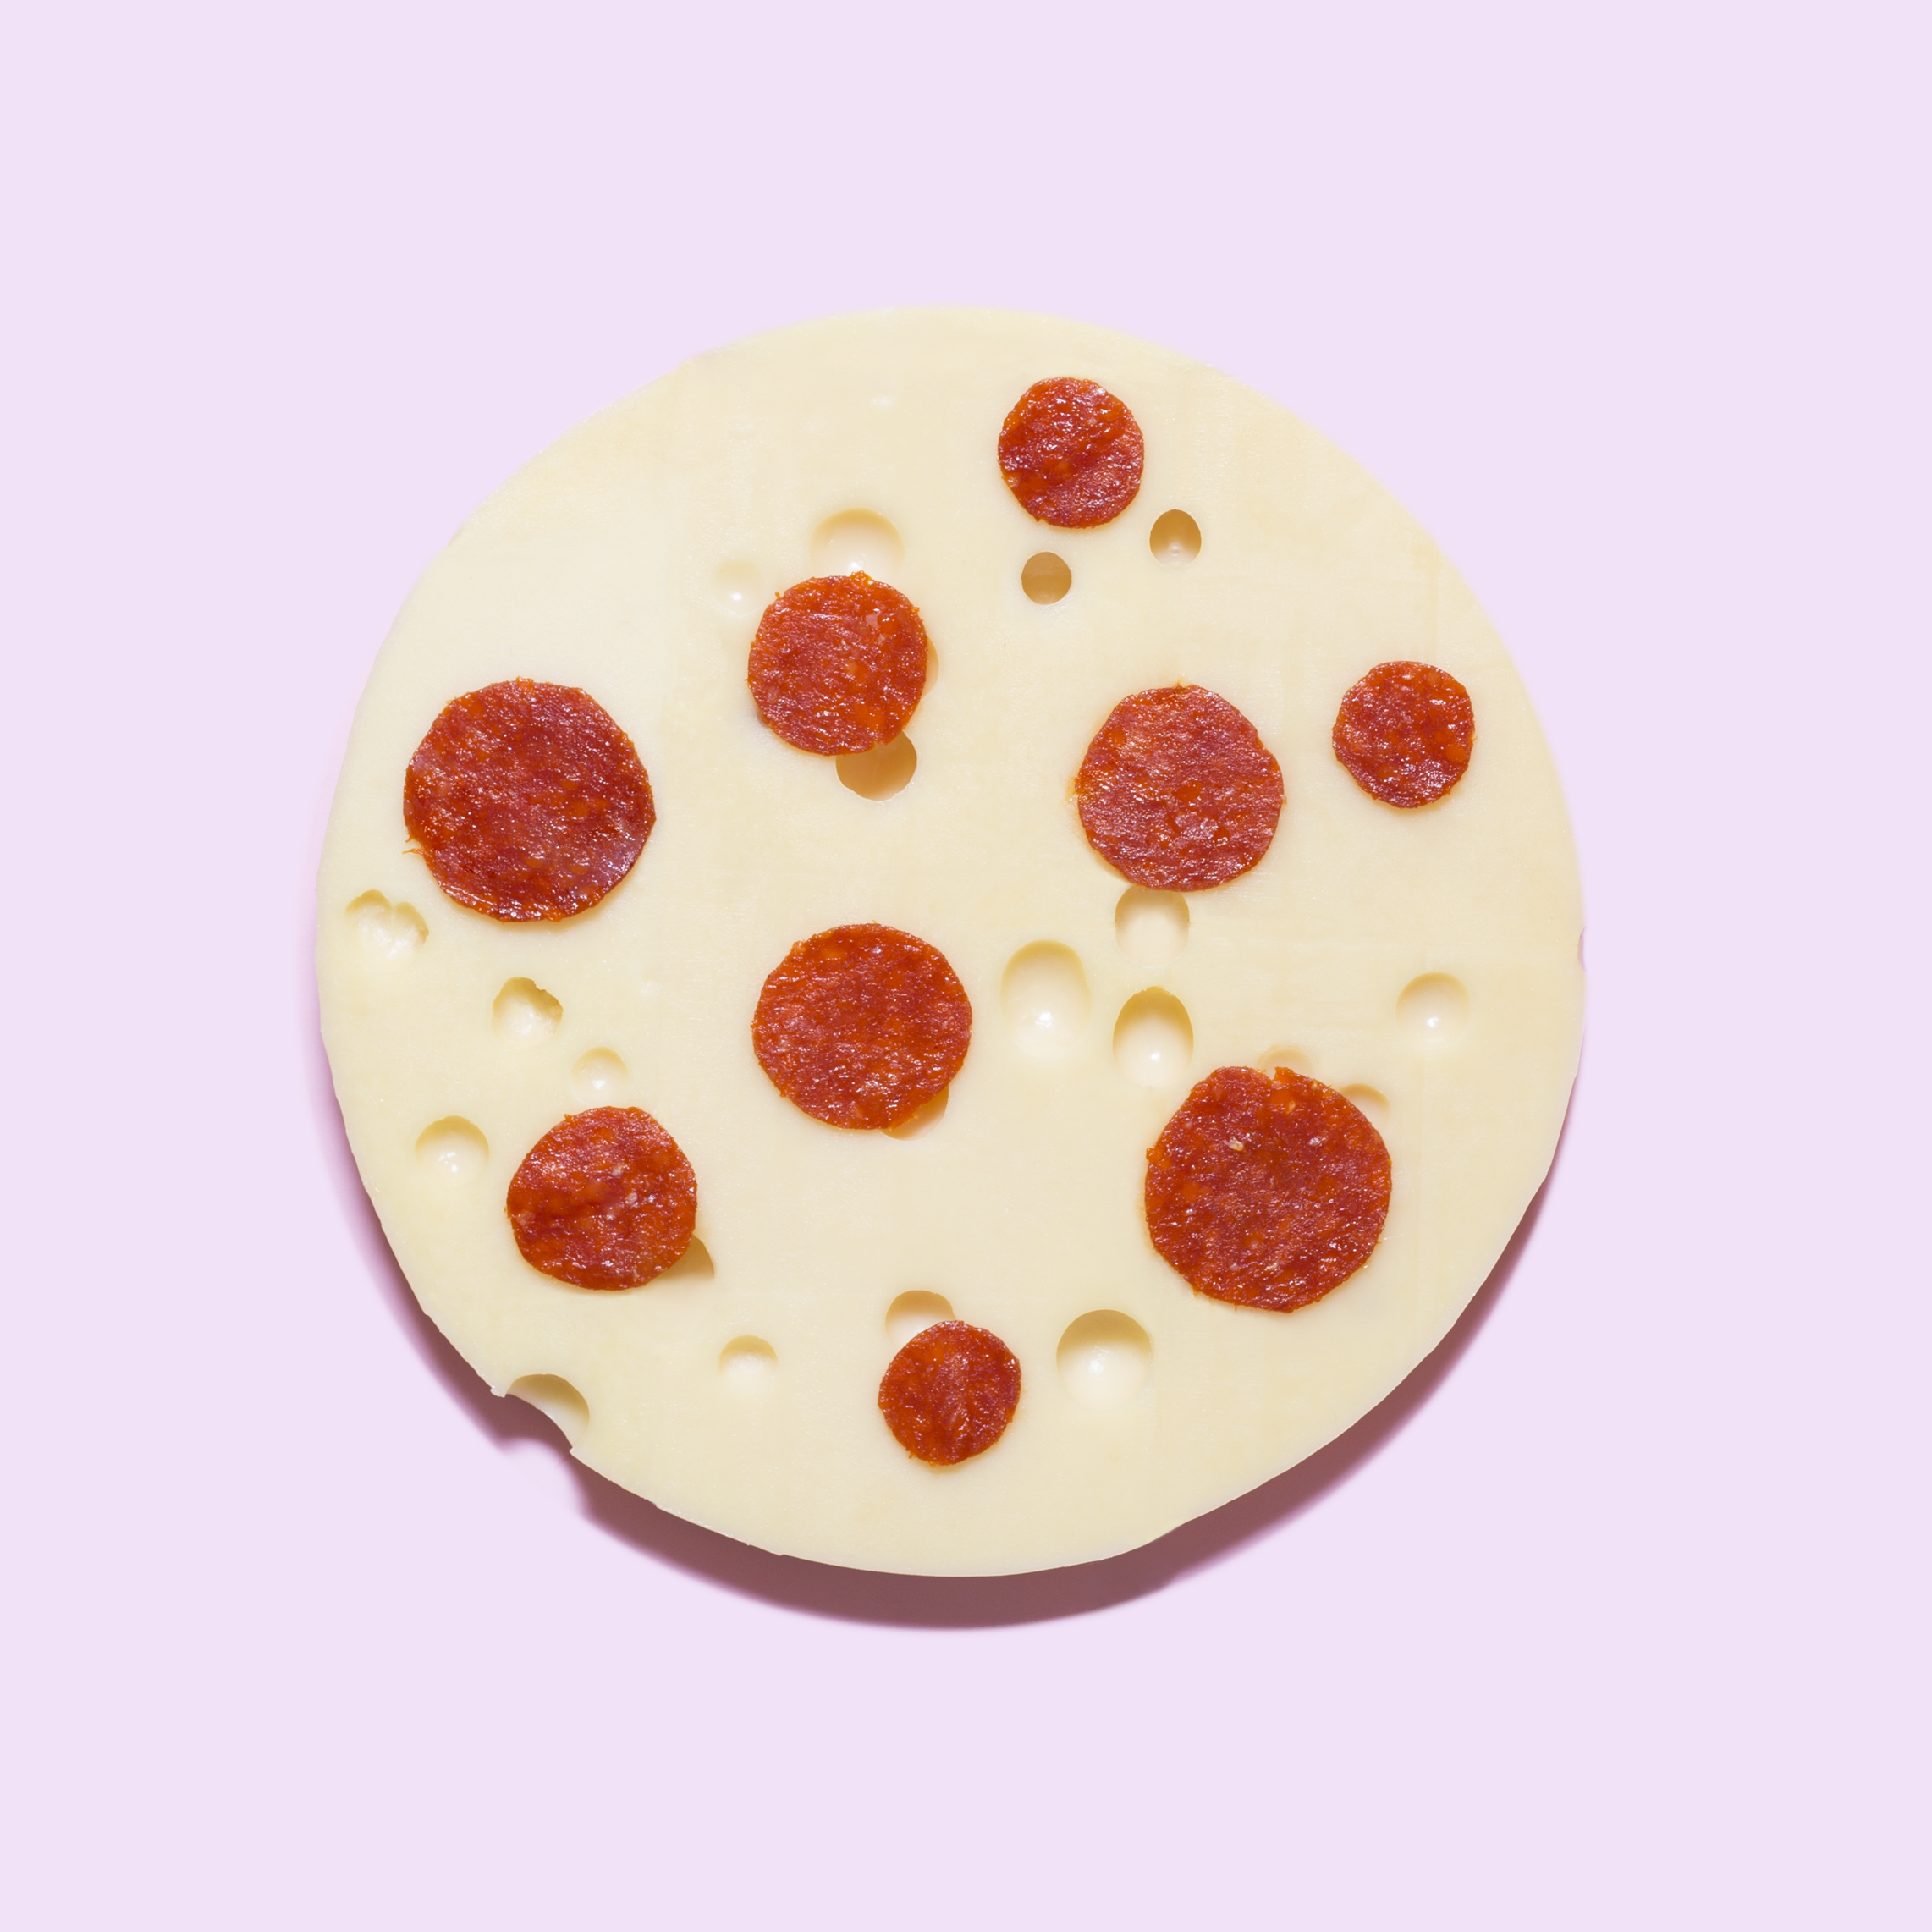 SEPTEMBER 5TH - CHEESE PIZZA DAY